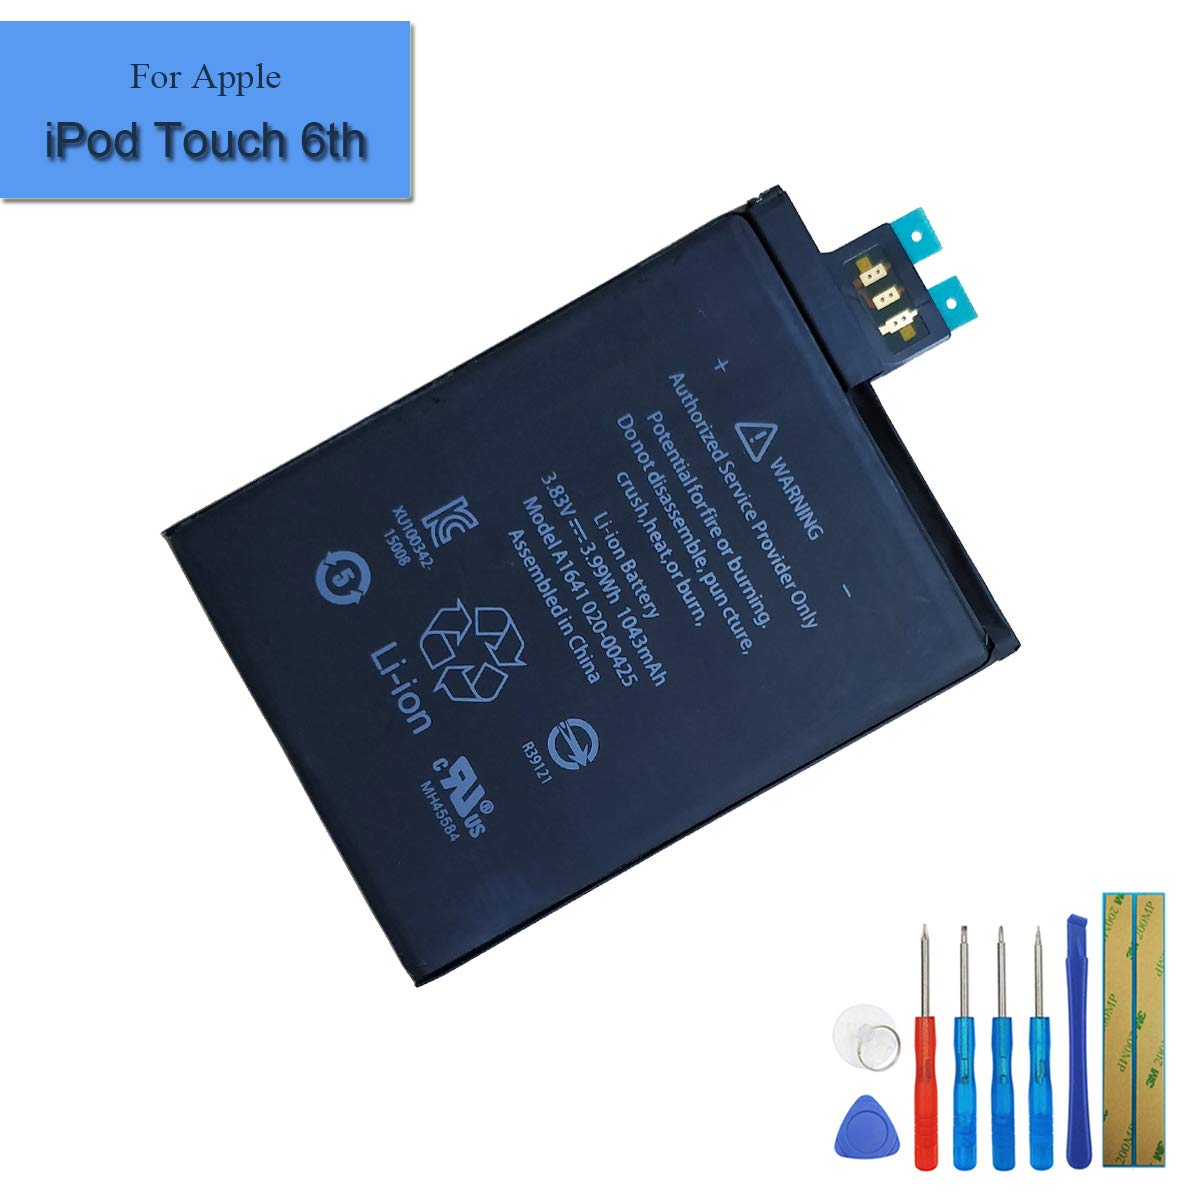 New Replacement Battery A1641 A1574 Compatible with Apple iPod Touch 6 6th Gen 1043mAh 3.83V + Tools by Melphyreal (Image #1)